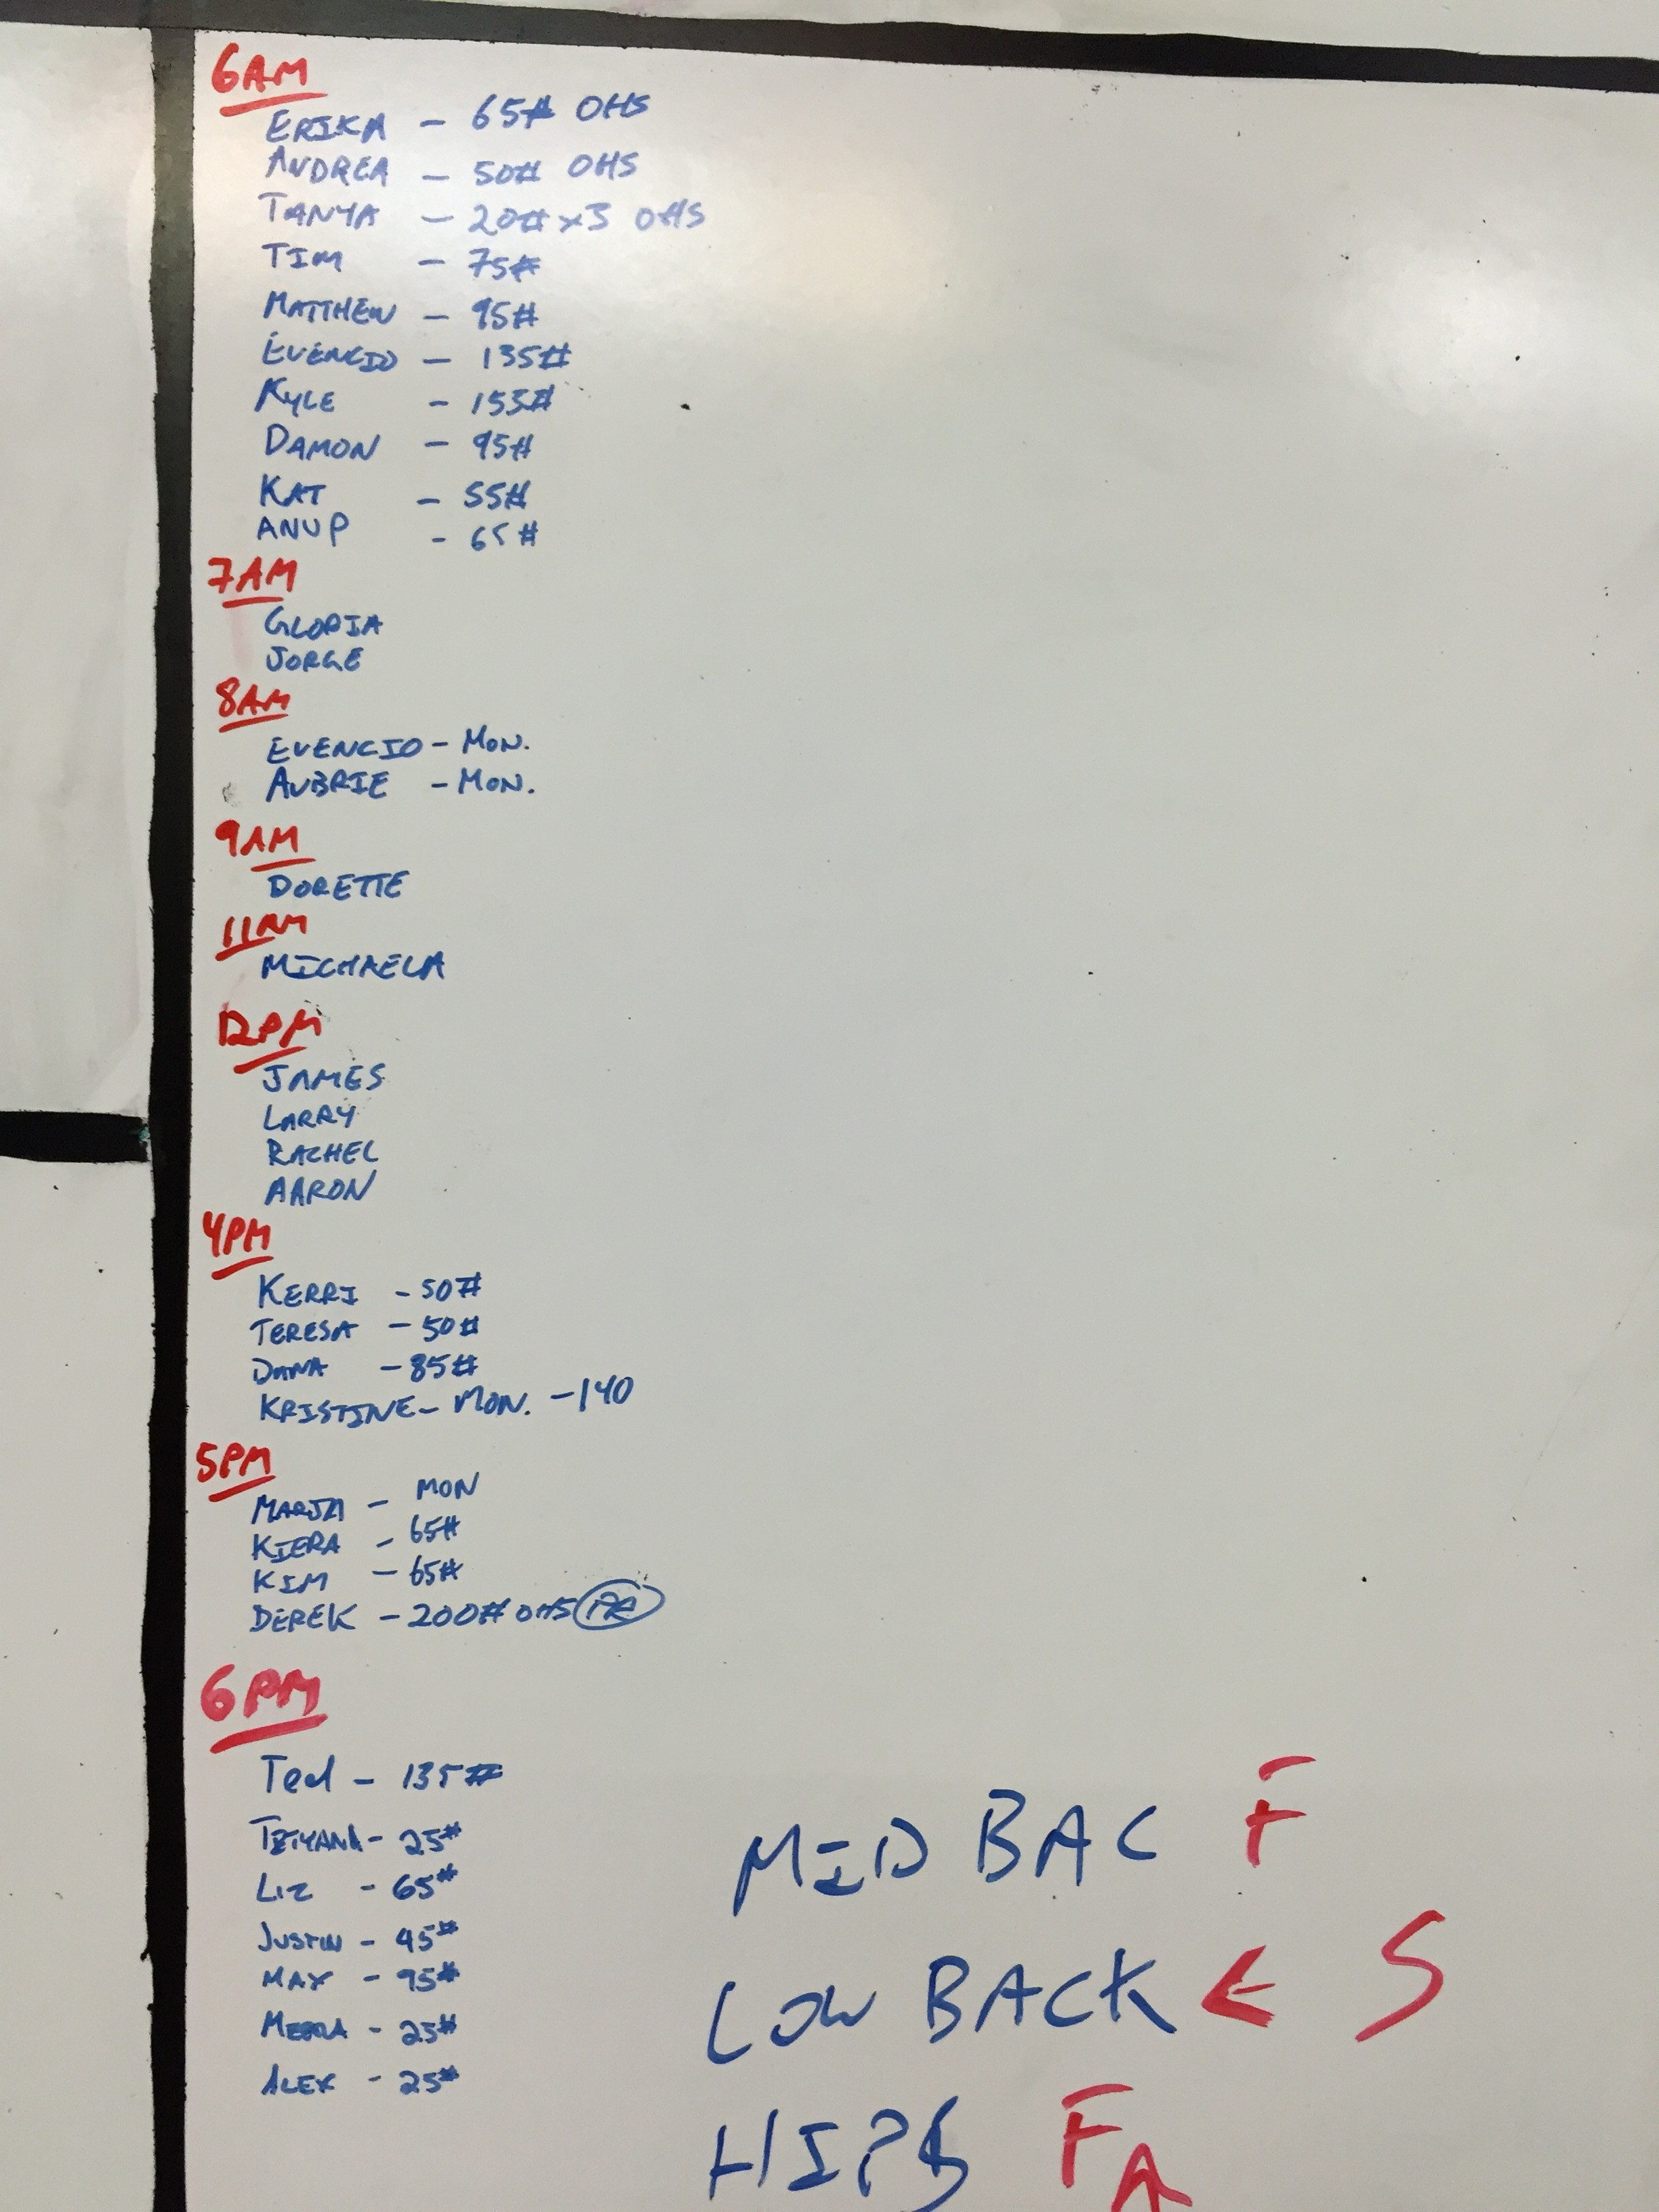 Sep 23 WOD Results